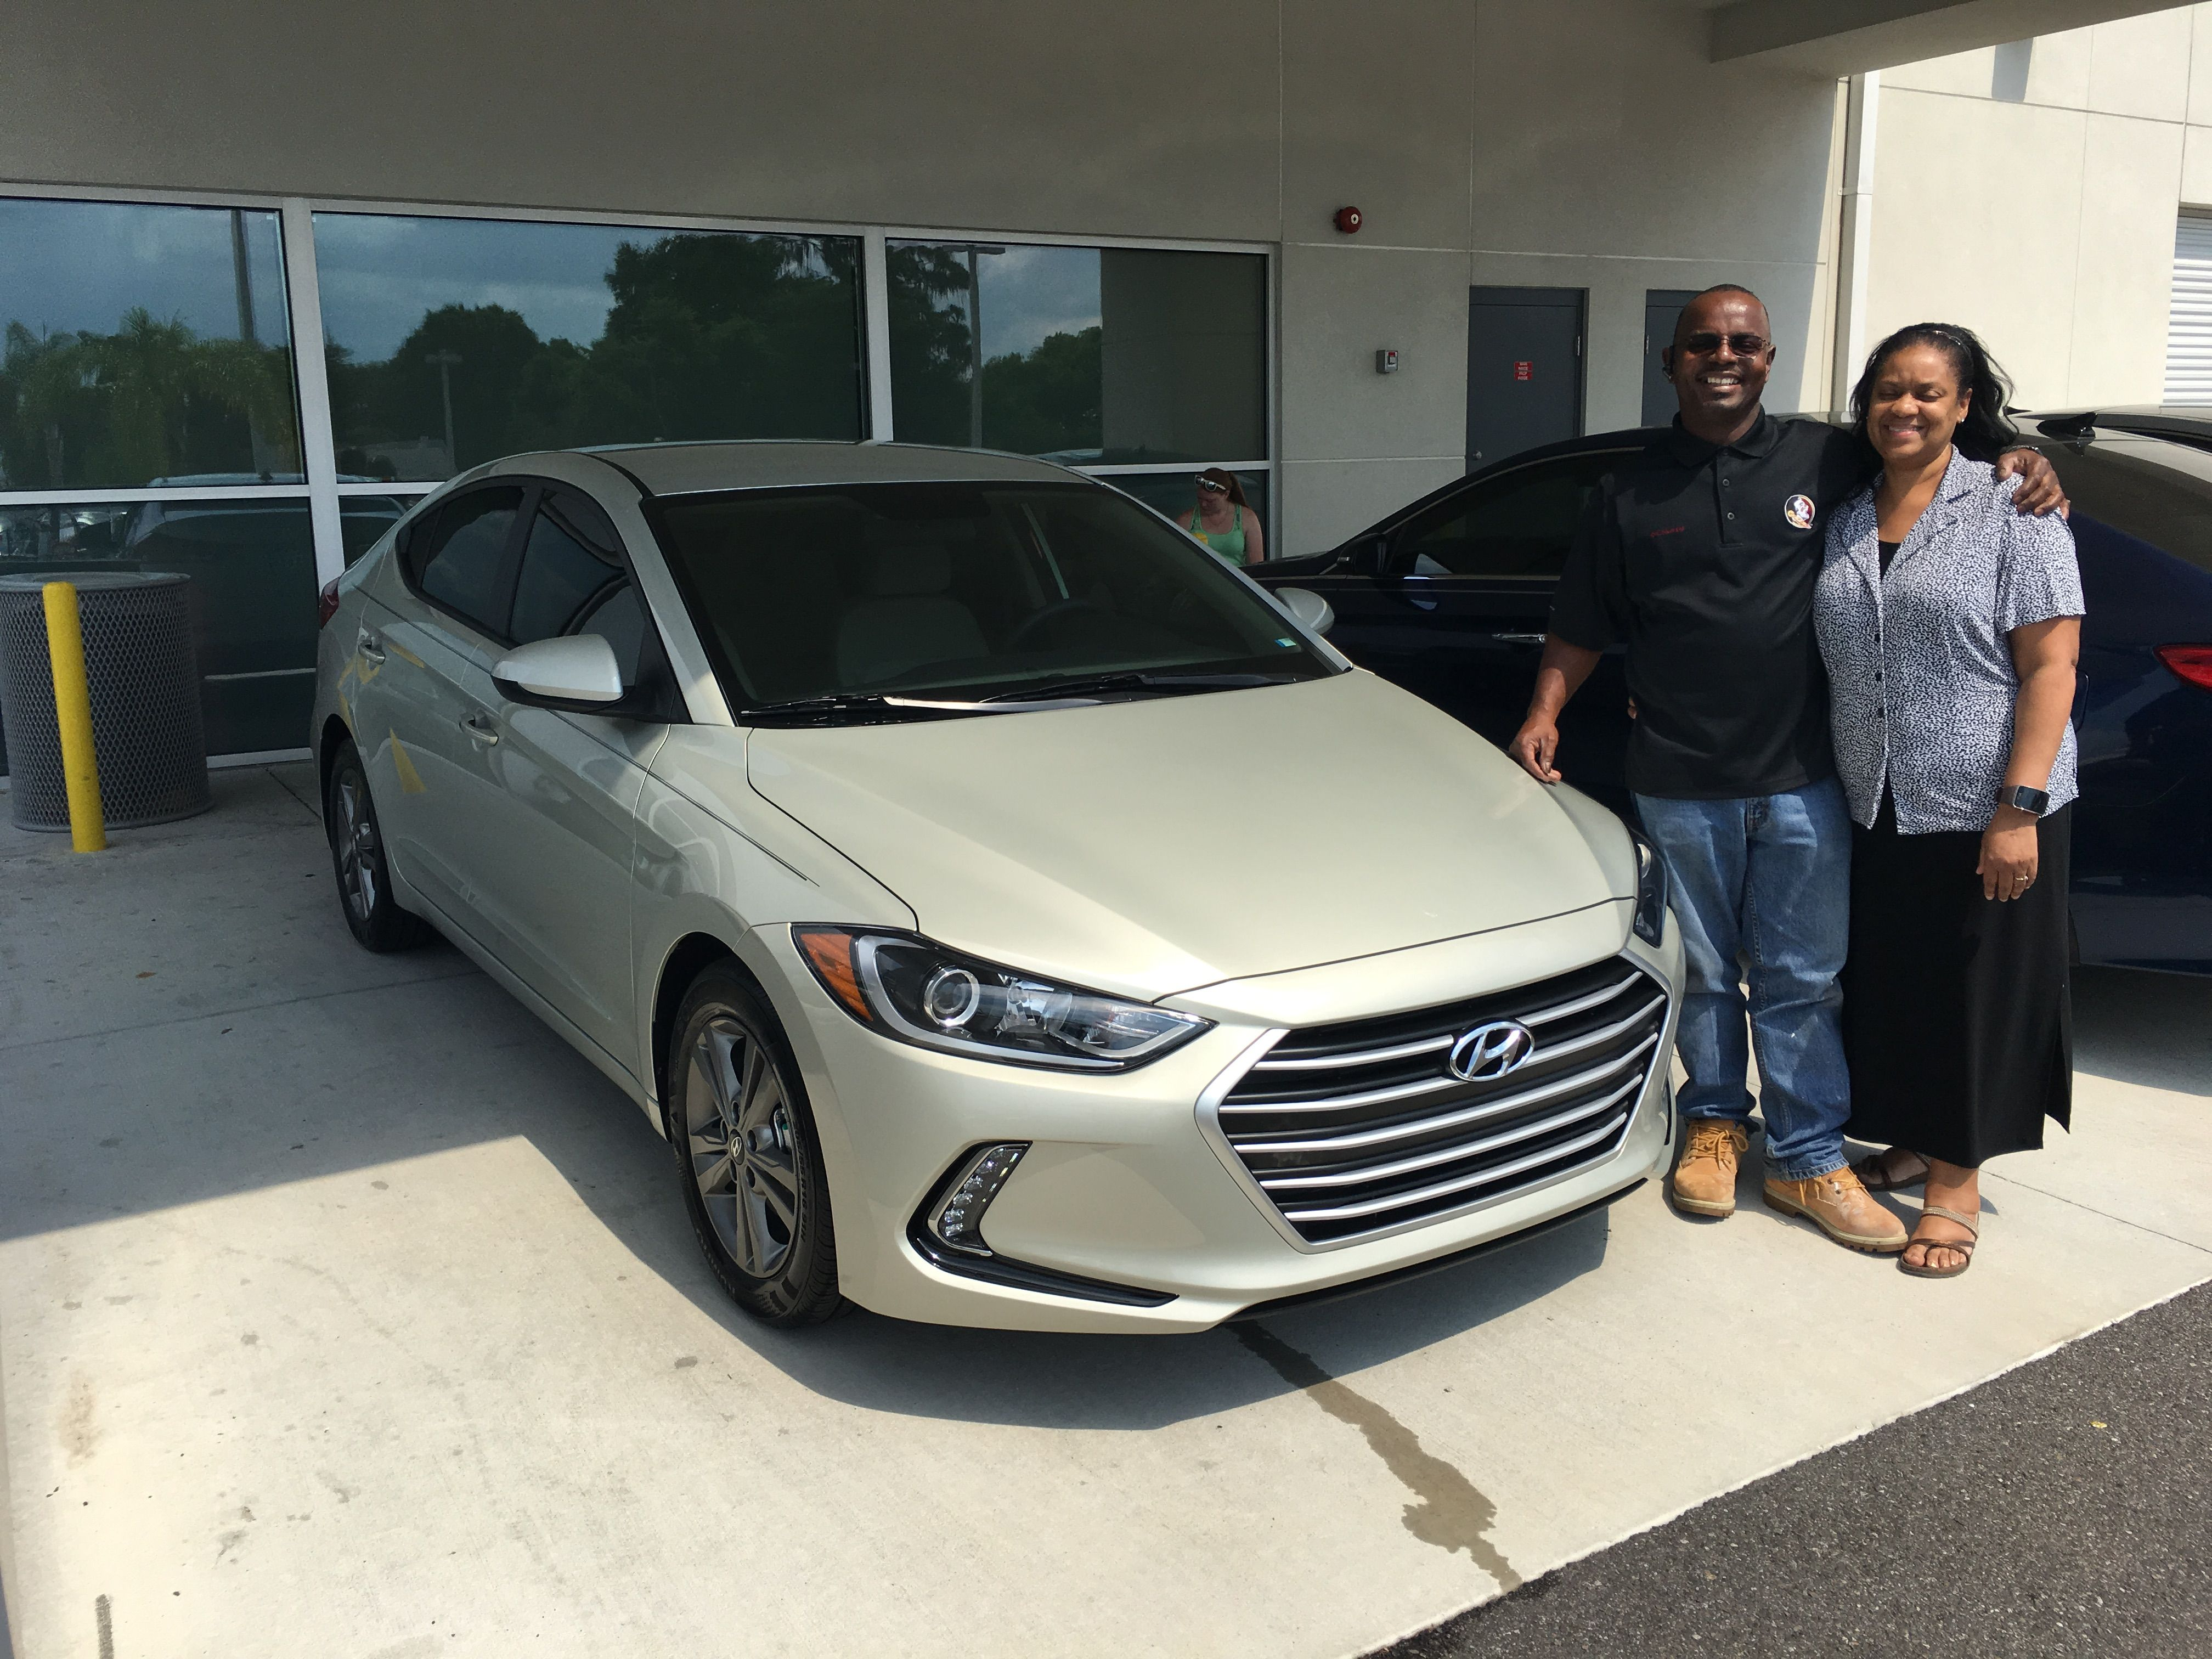 listings lakeland motor car four lake haines auburndale ray sale city dealer pay used gls s hyundai corners wales bartow winter for here kissimmee haven davenport buy sales sonata rays full